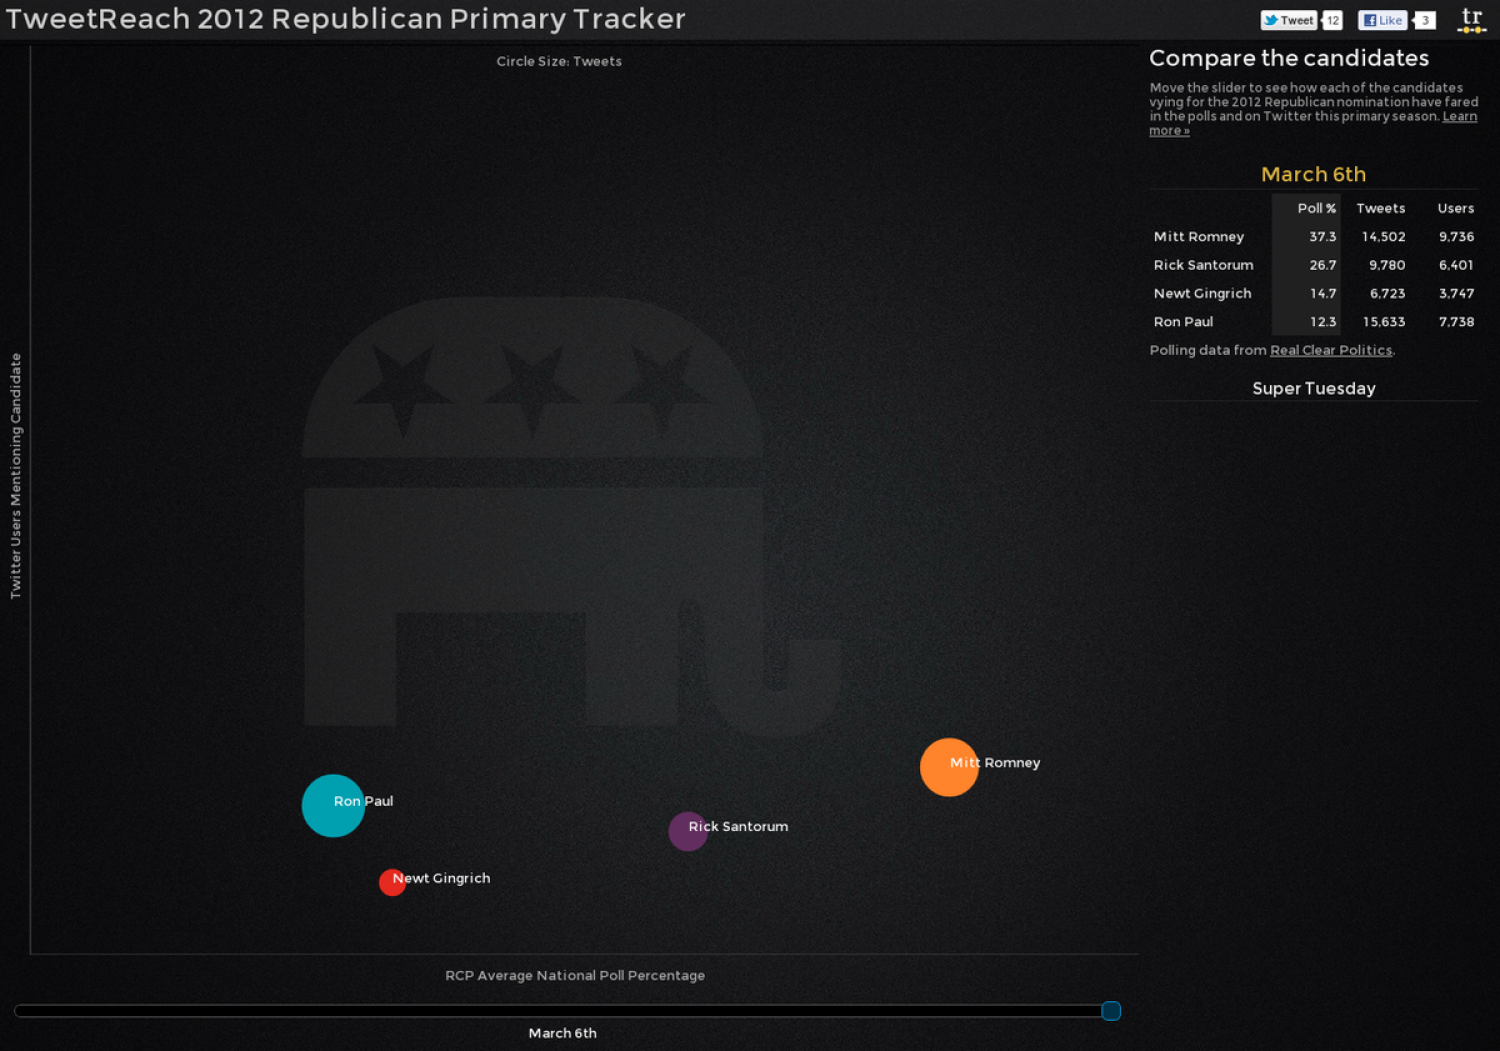 Republican Primary Tweet Tracker Infographic